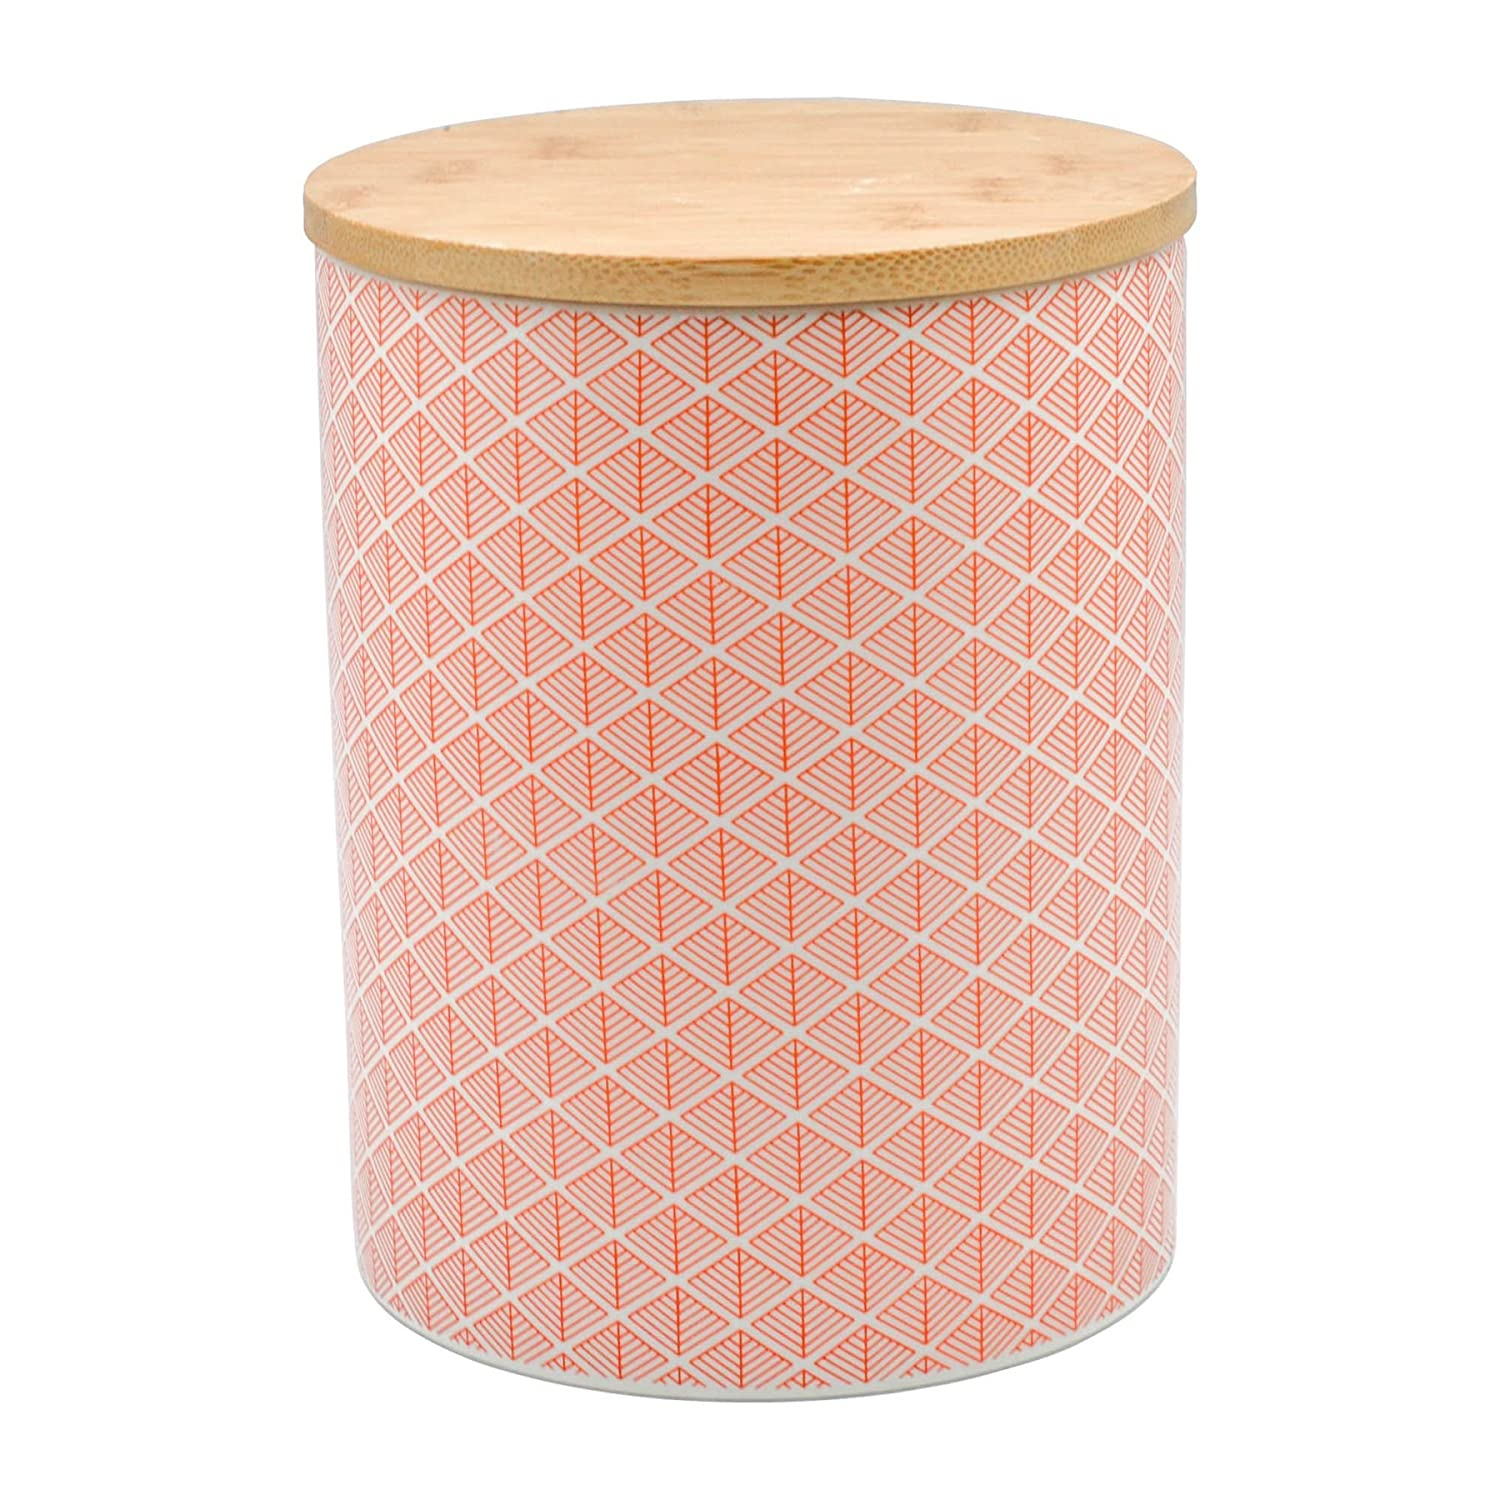 Nicola Spring Geometric Design Patterned Porcelain Biscuit Barrel - Coral/Orange